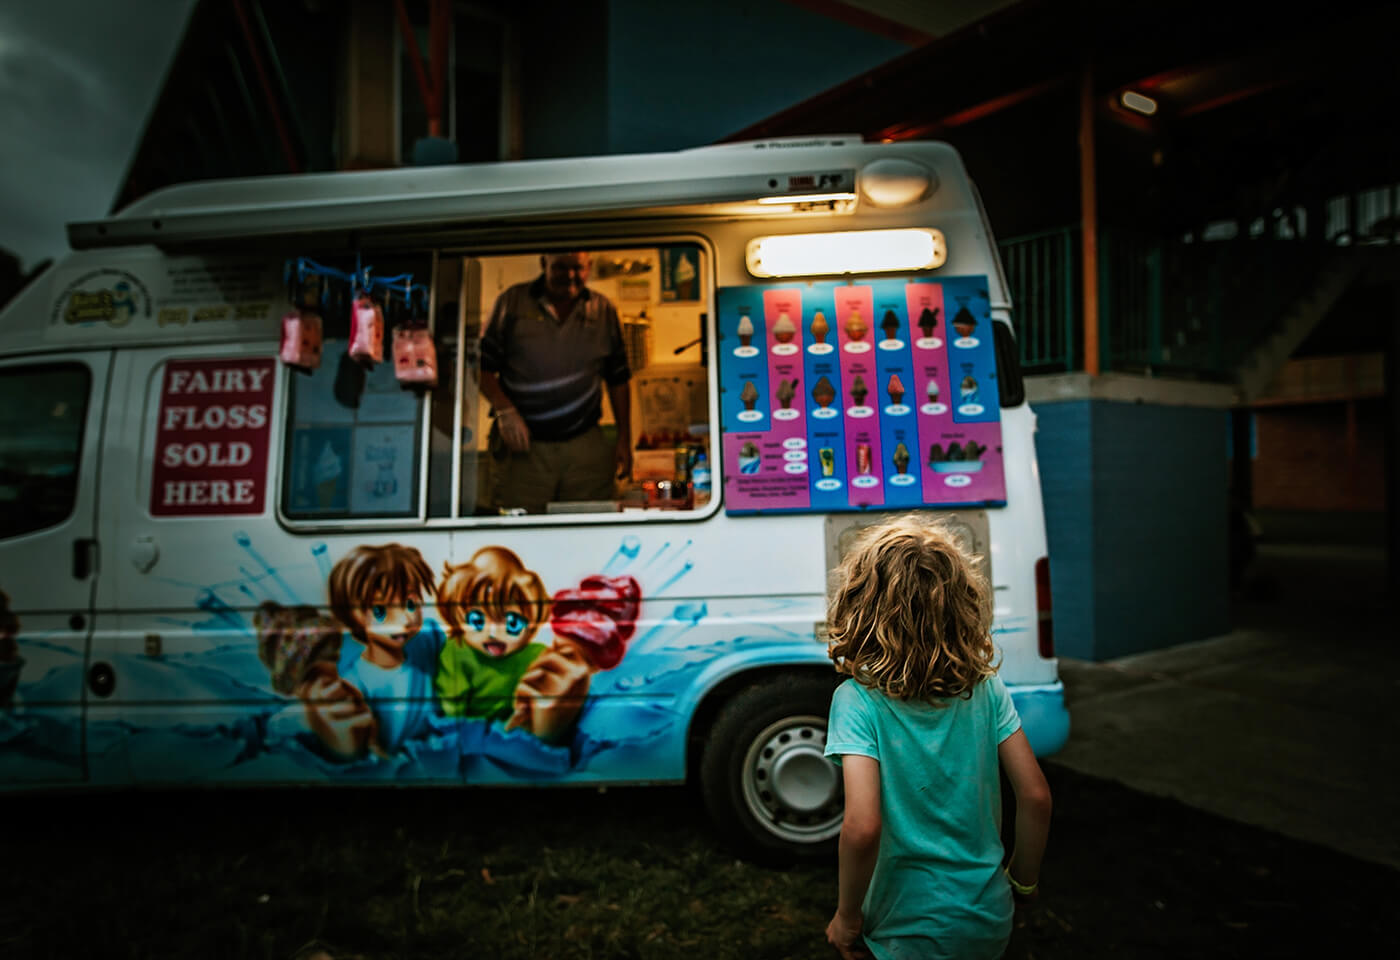 Image of child at ice cream truck